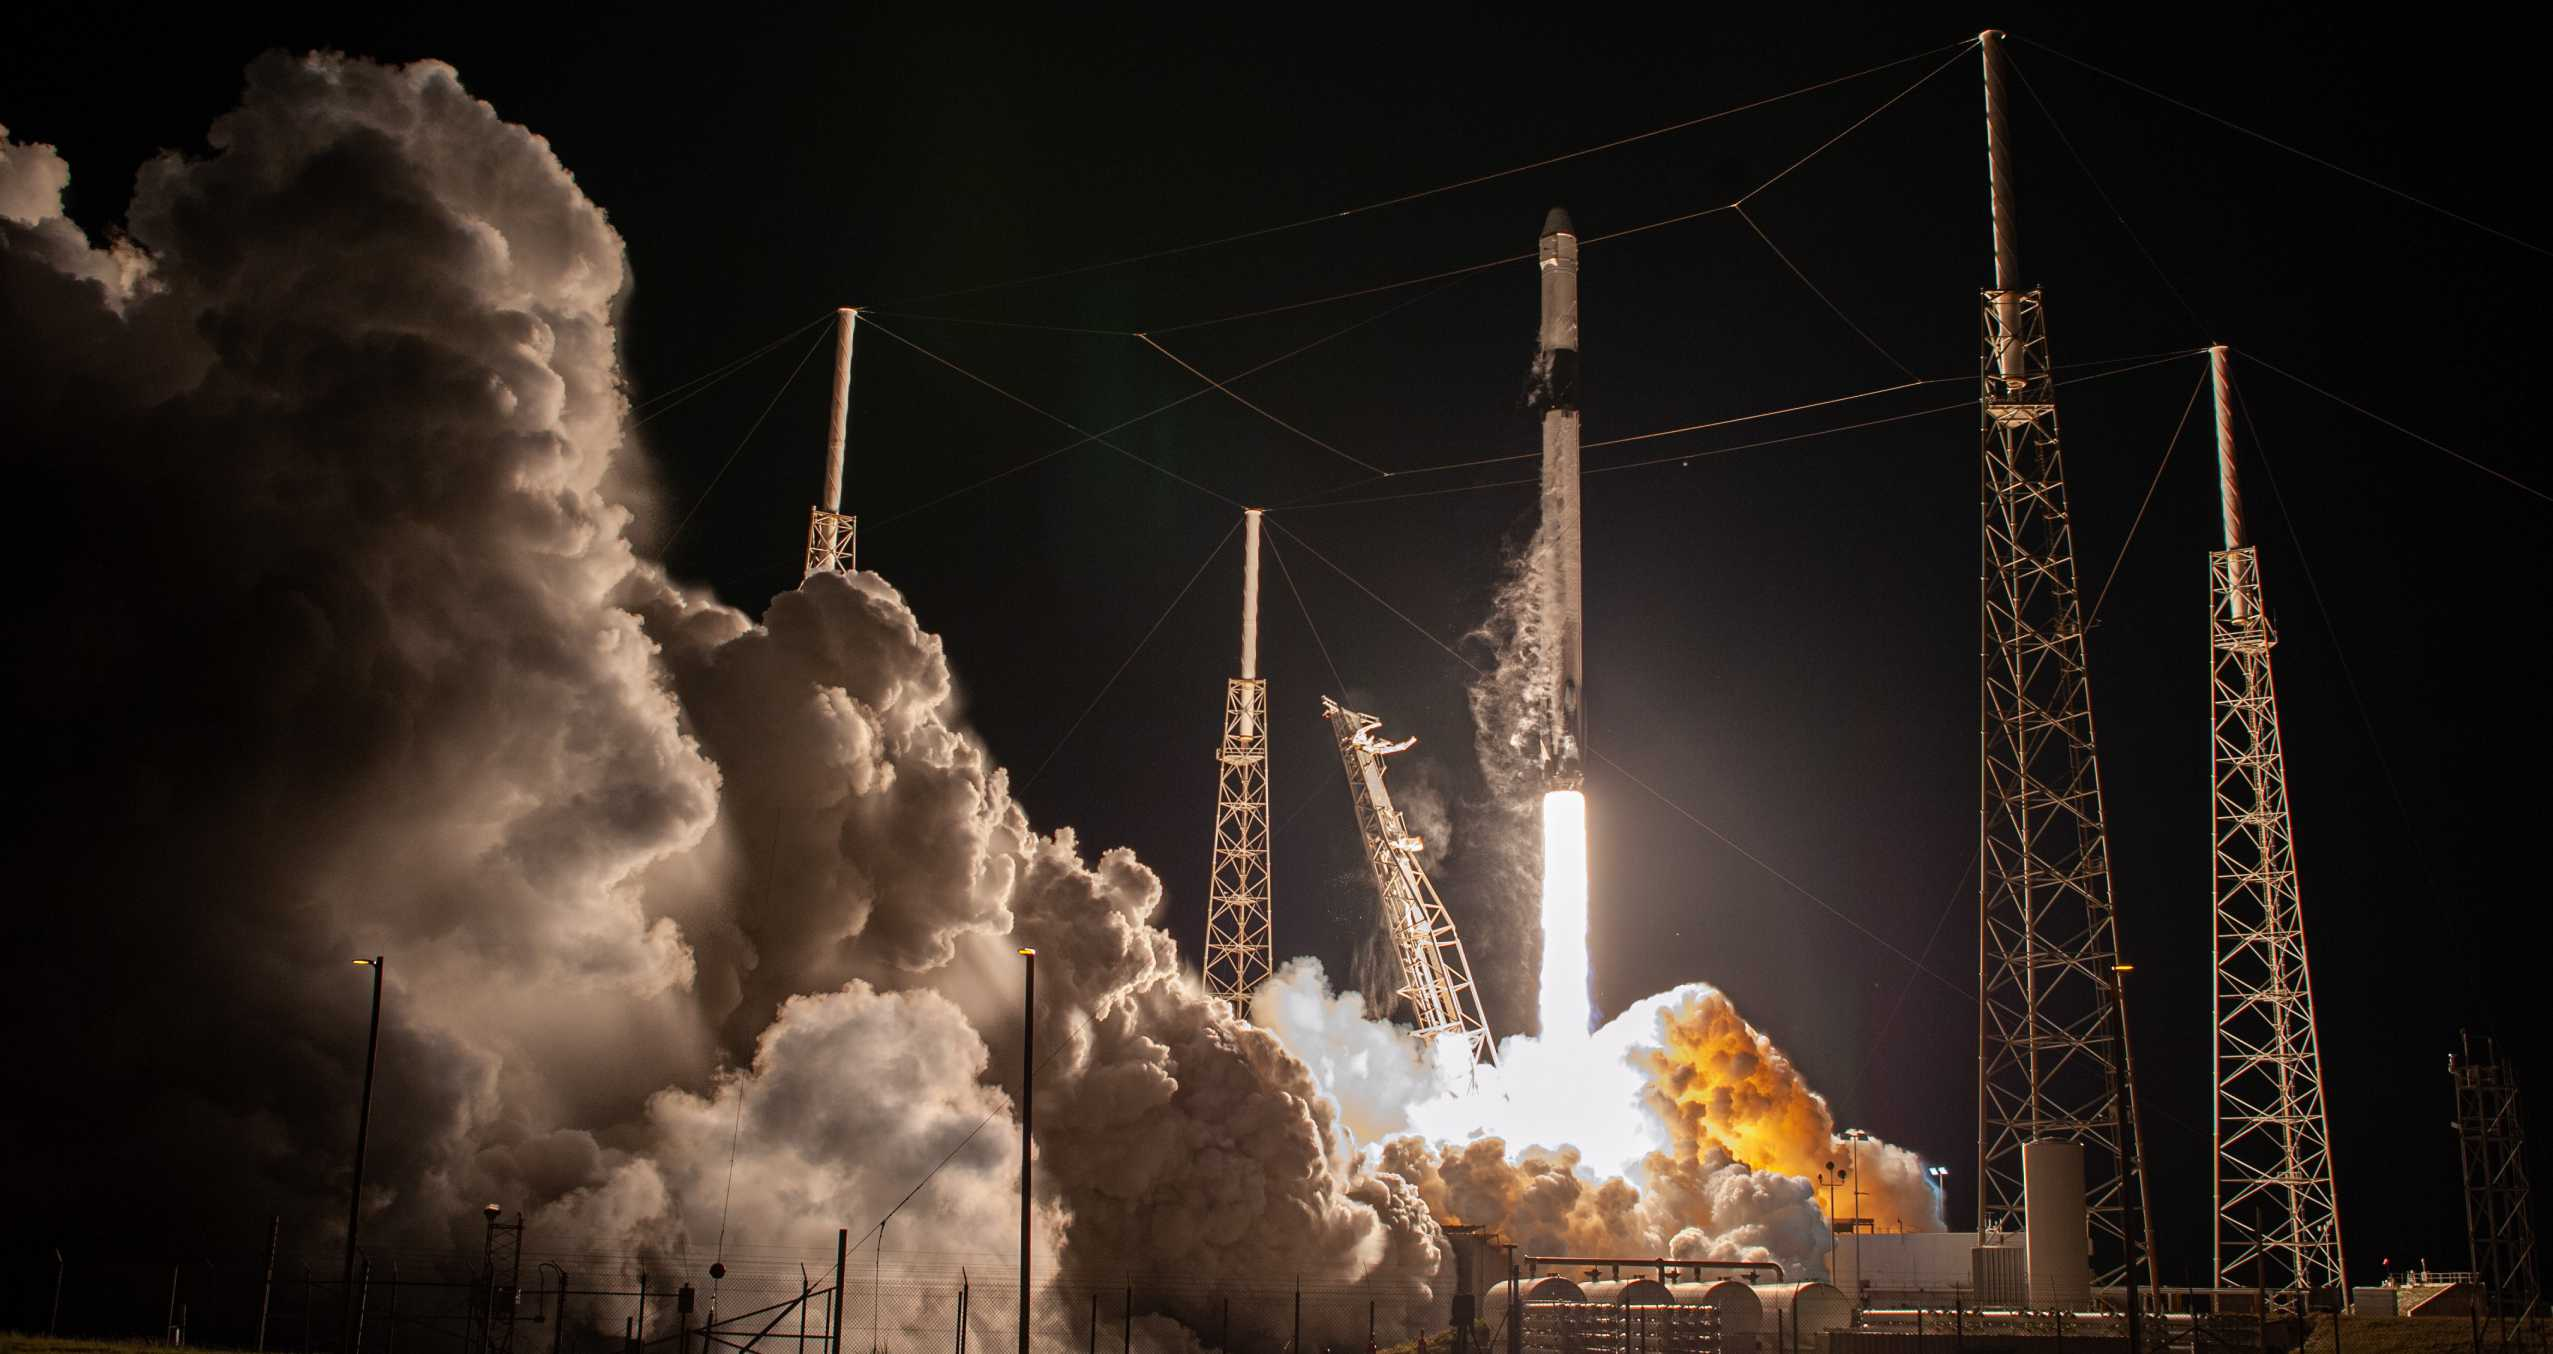 CRS-20 Dragon C112 F9 B1059 030720 (NASA) launch 2 crop (c)